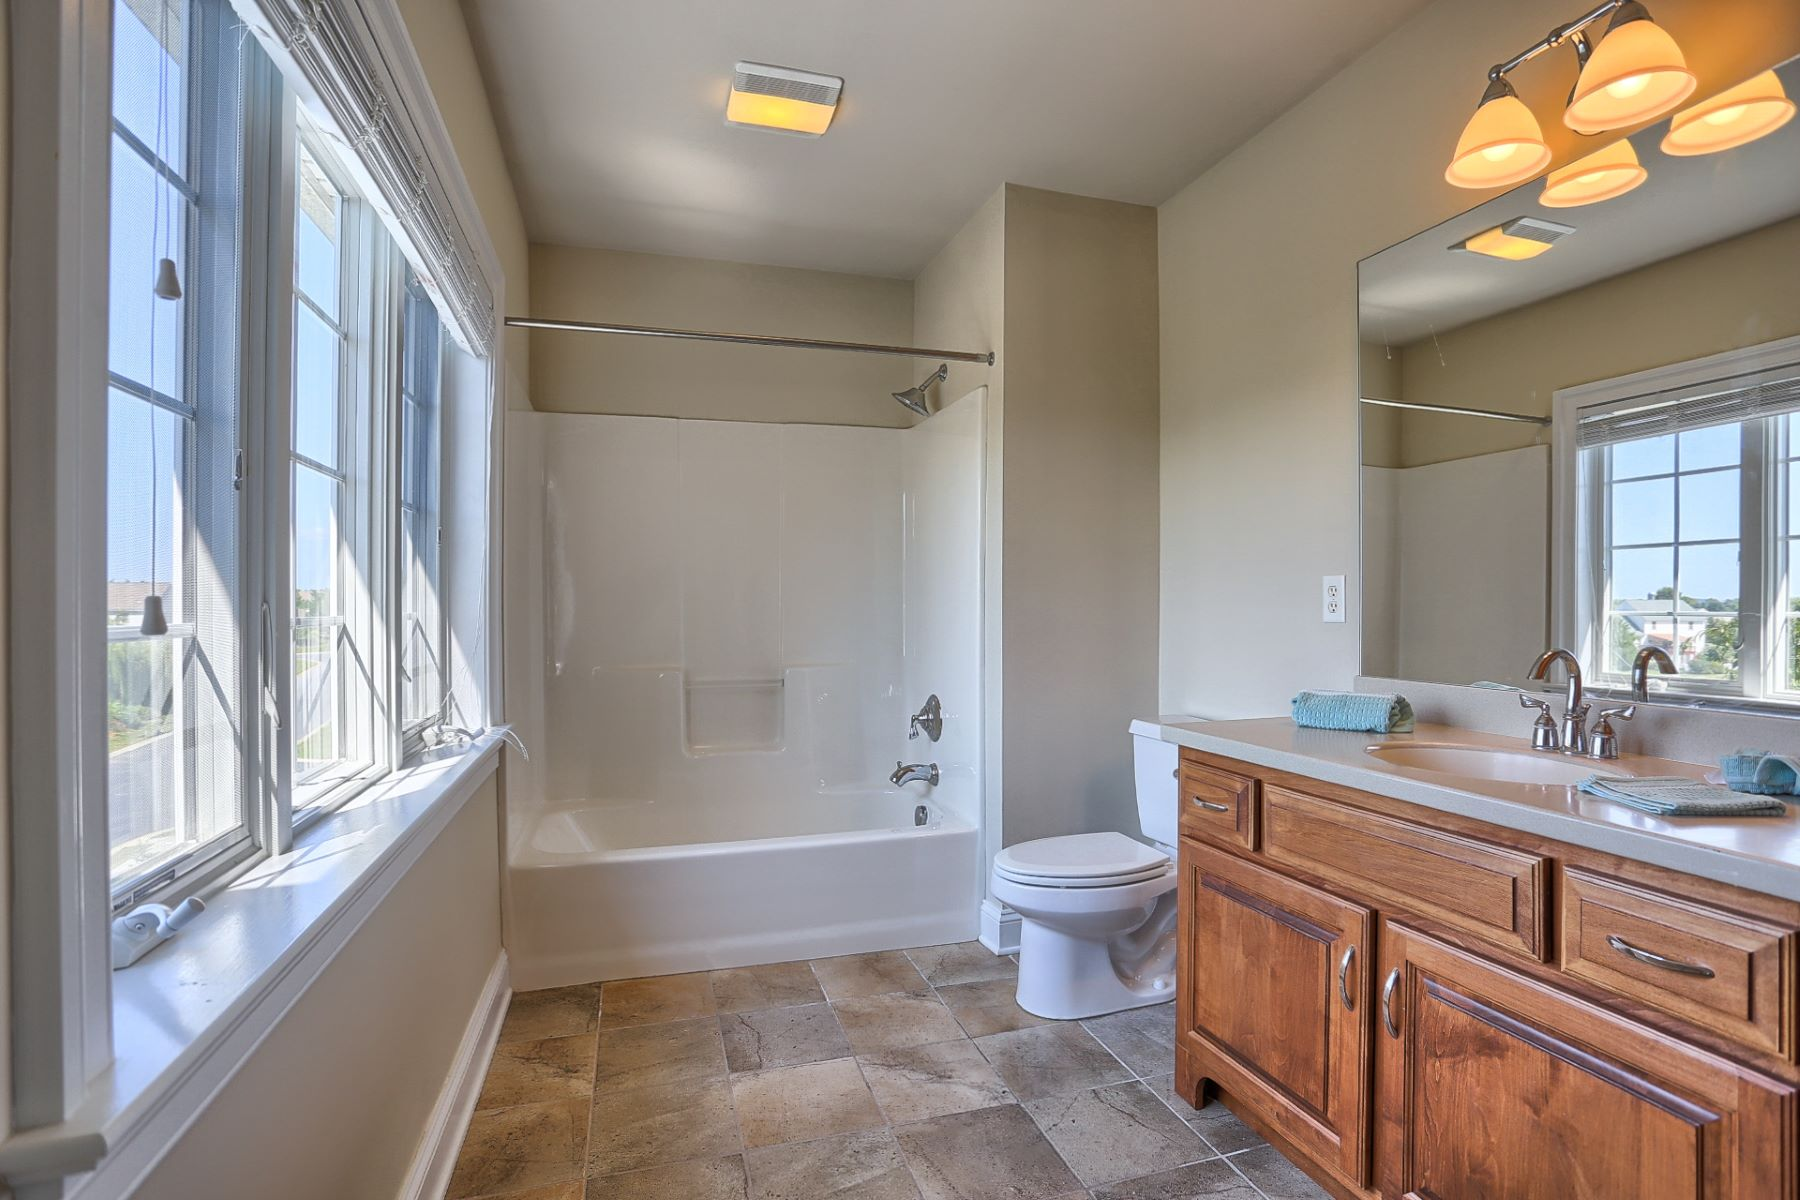 Additional photo for property listing at 344 Royal Hunt Way  Lititz, Pennsylvania 17543 Estados Unidos